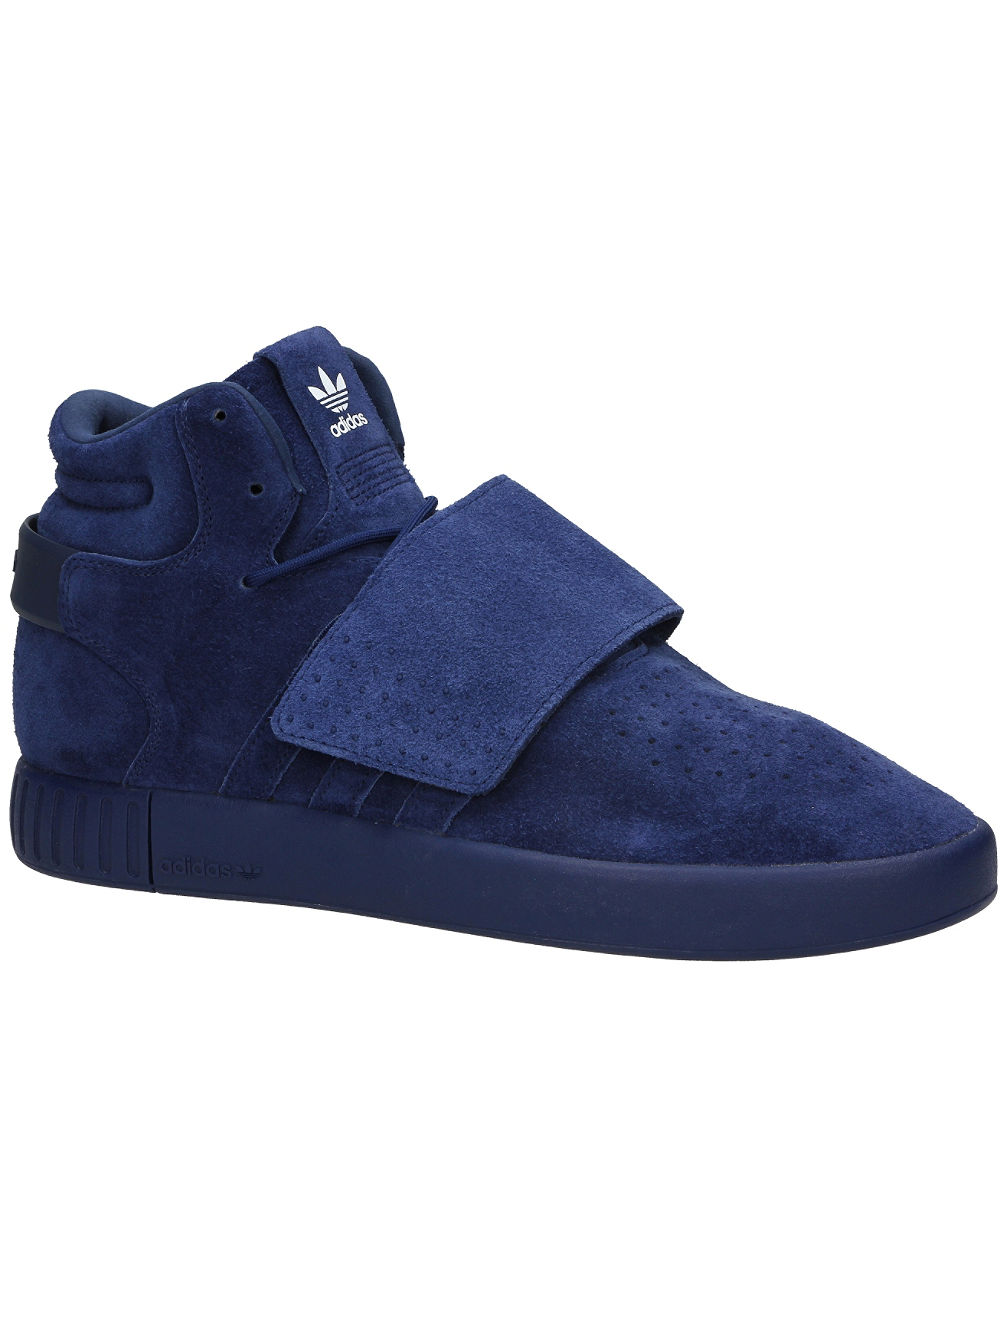 Cheap adidas tubular invader strap grey Wictorsson & Partners